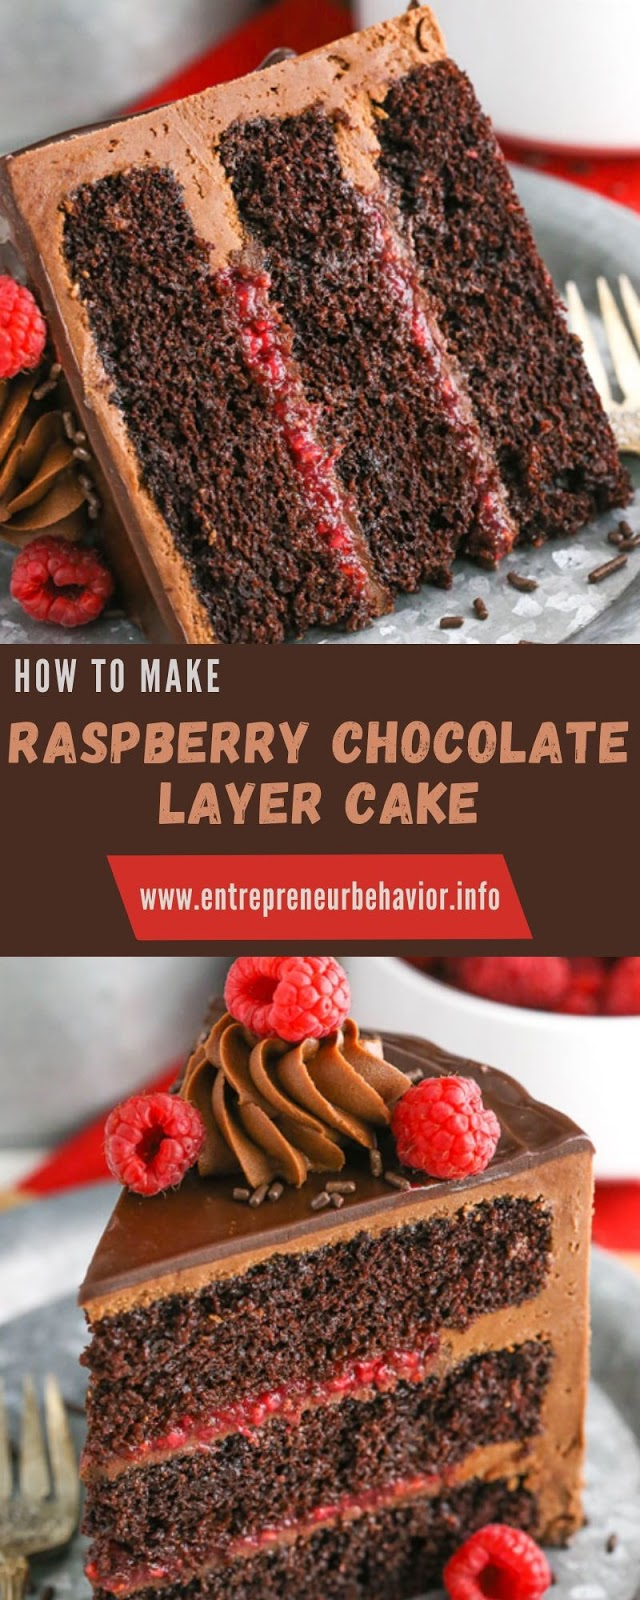 HOW TO MAKE RASPBERRY CHOCOLATE LAYER CAKE